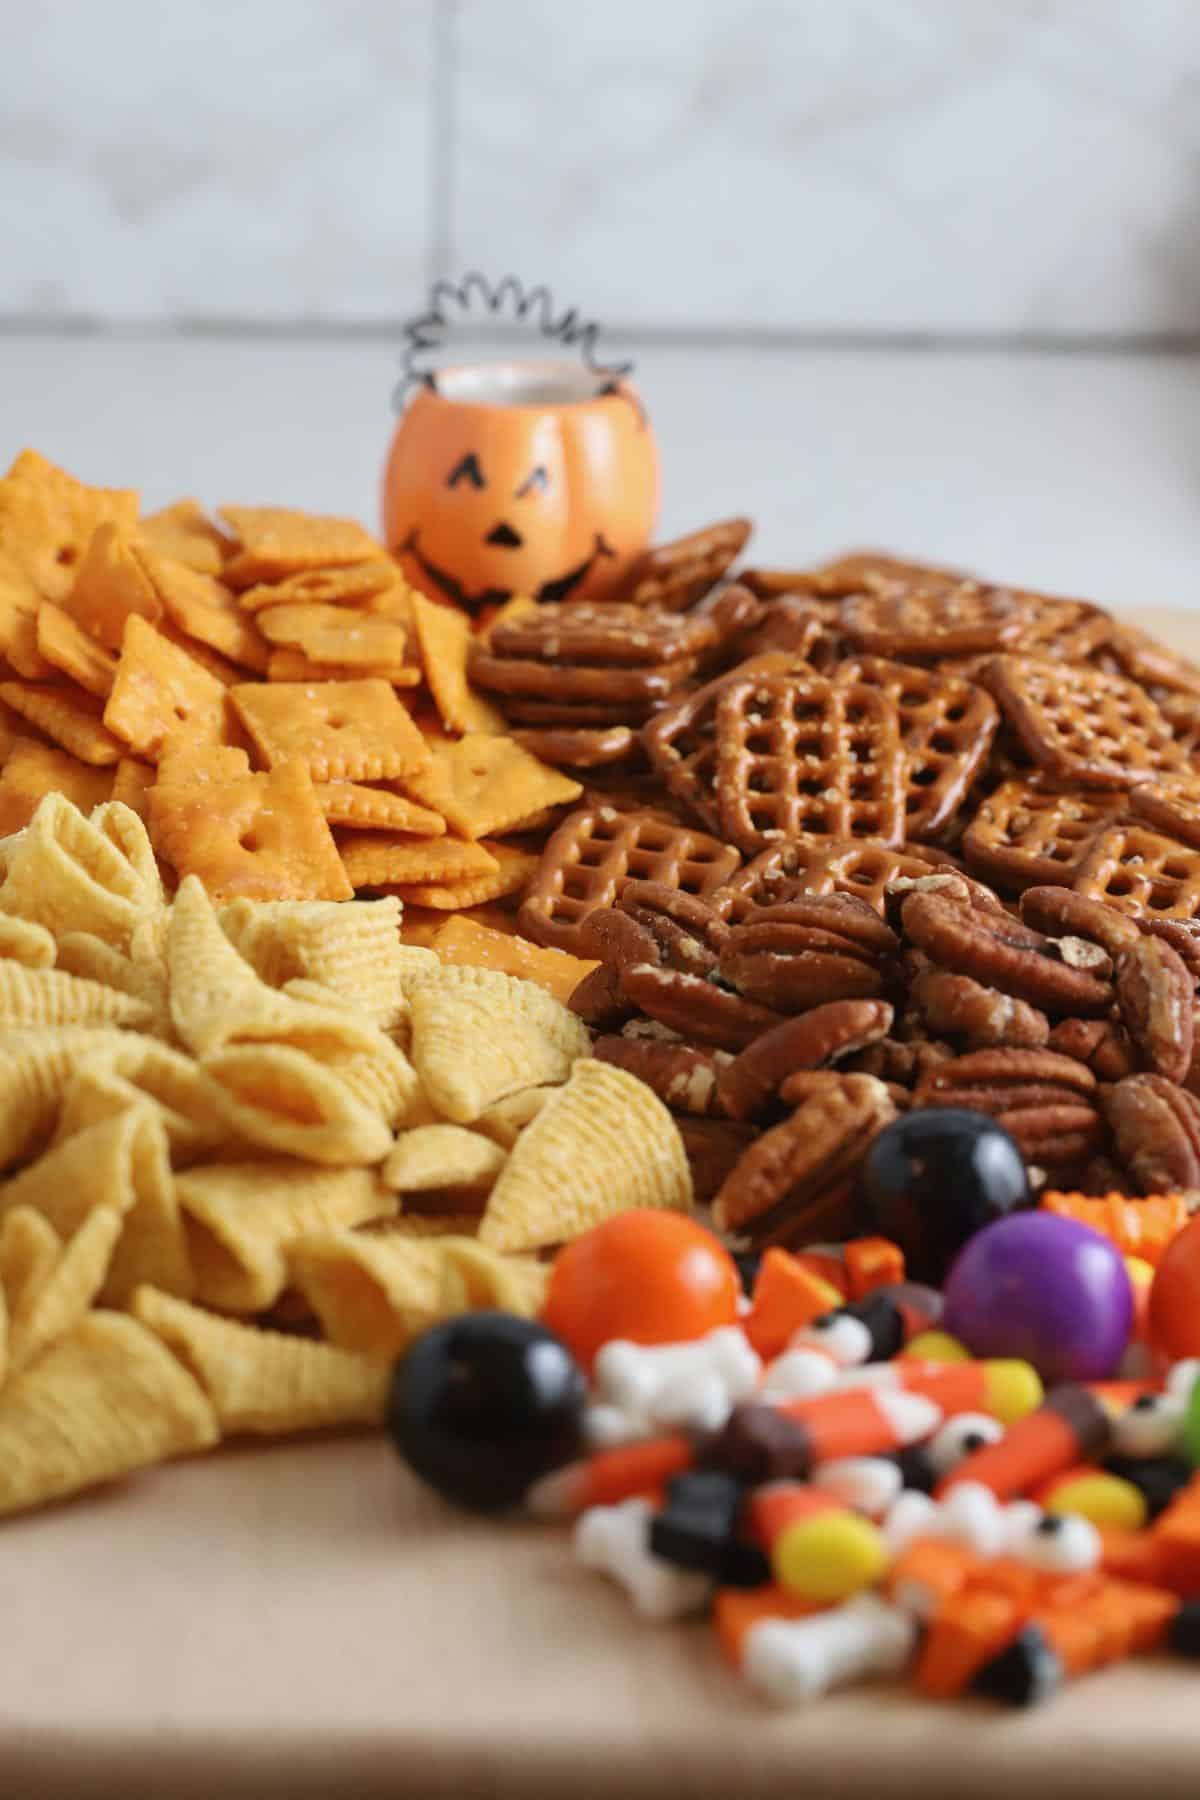 Bugles, pretzels, Cheez-its and Halloween candy.